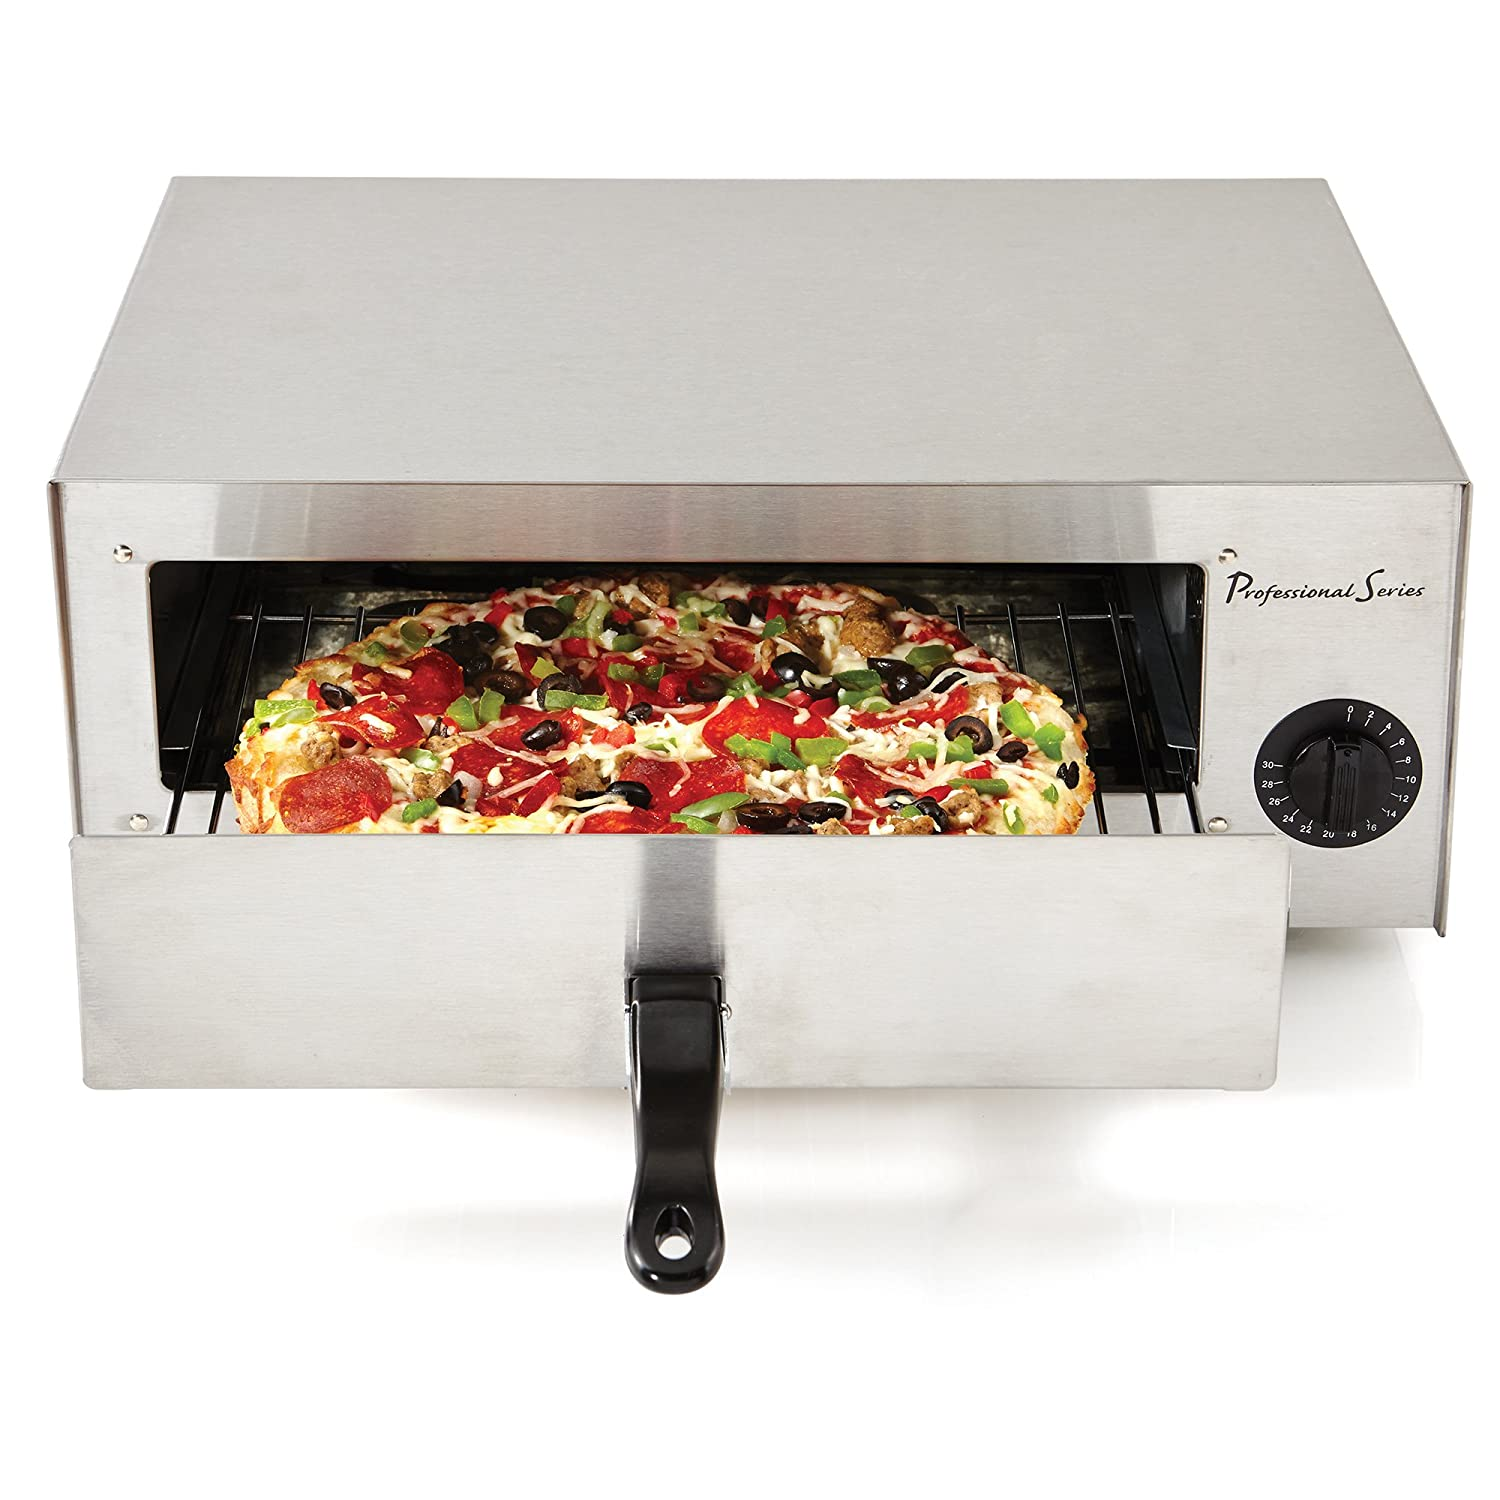 Continental Electric PS-PO891 Professional Series Pizza Oven, Countertop, Stainless Steel